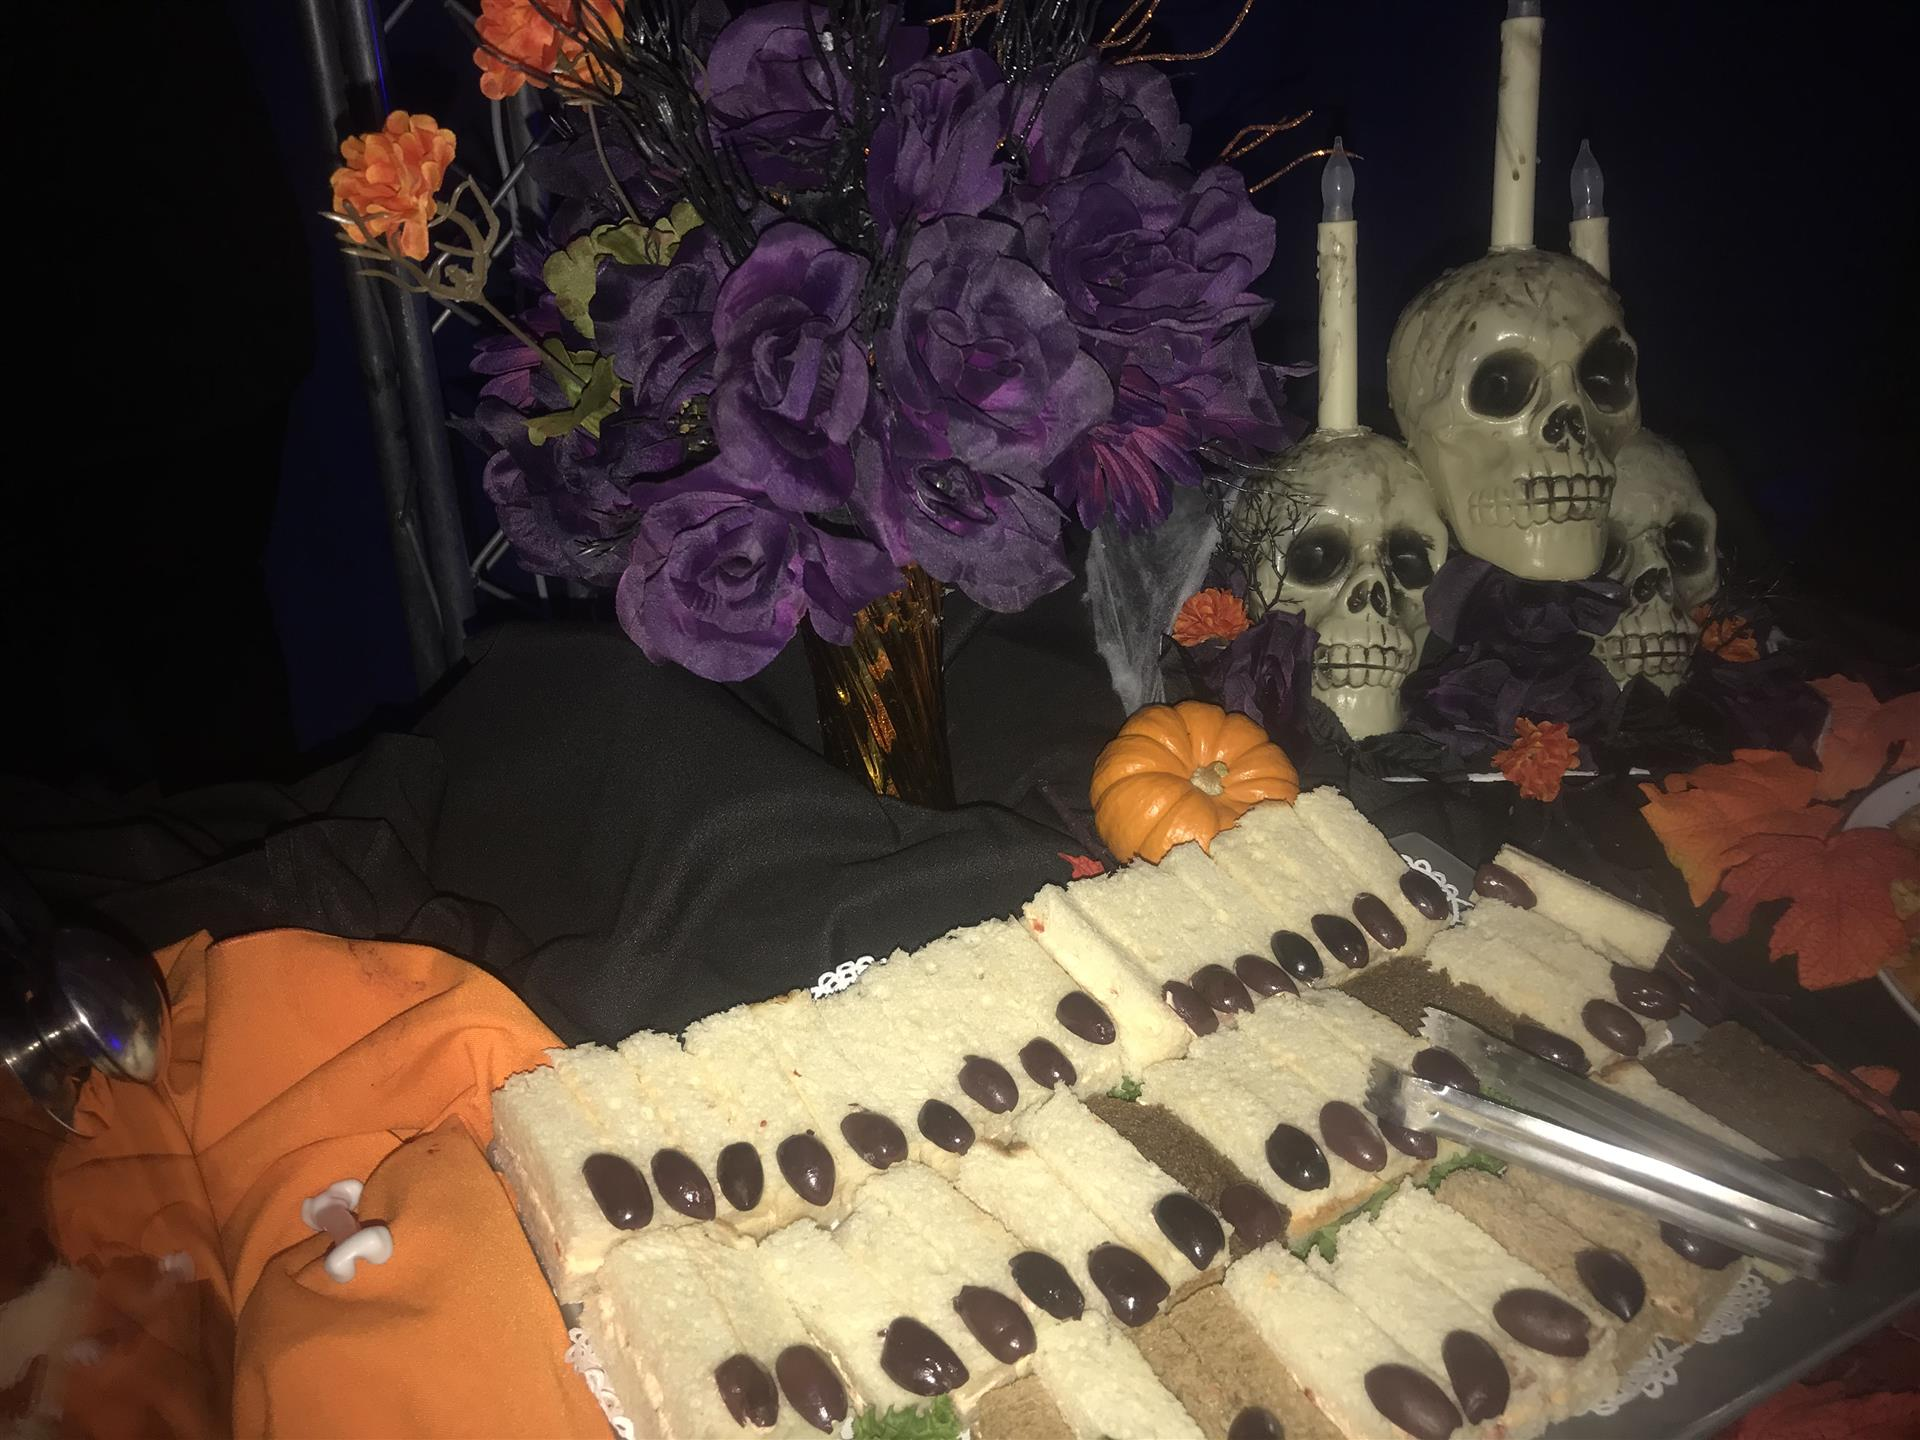 Halloween decorared finger sandwiches on a black and orange table cloth